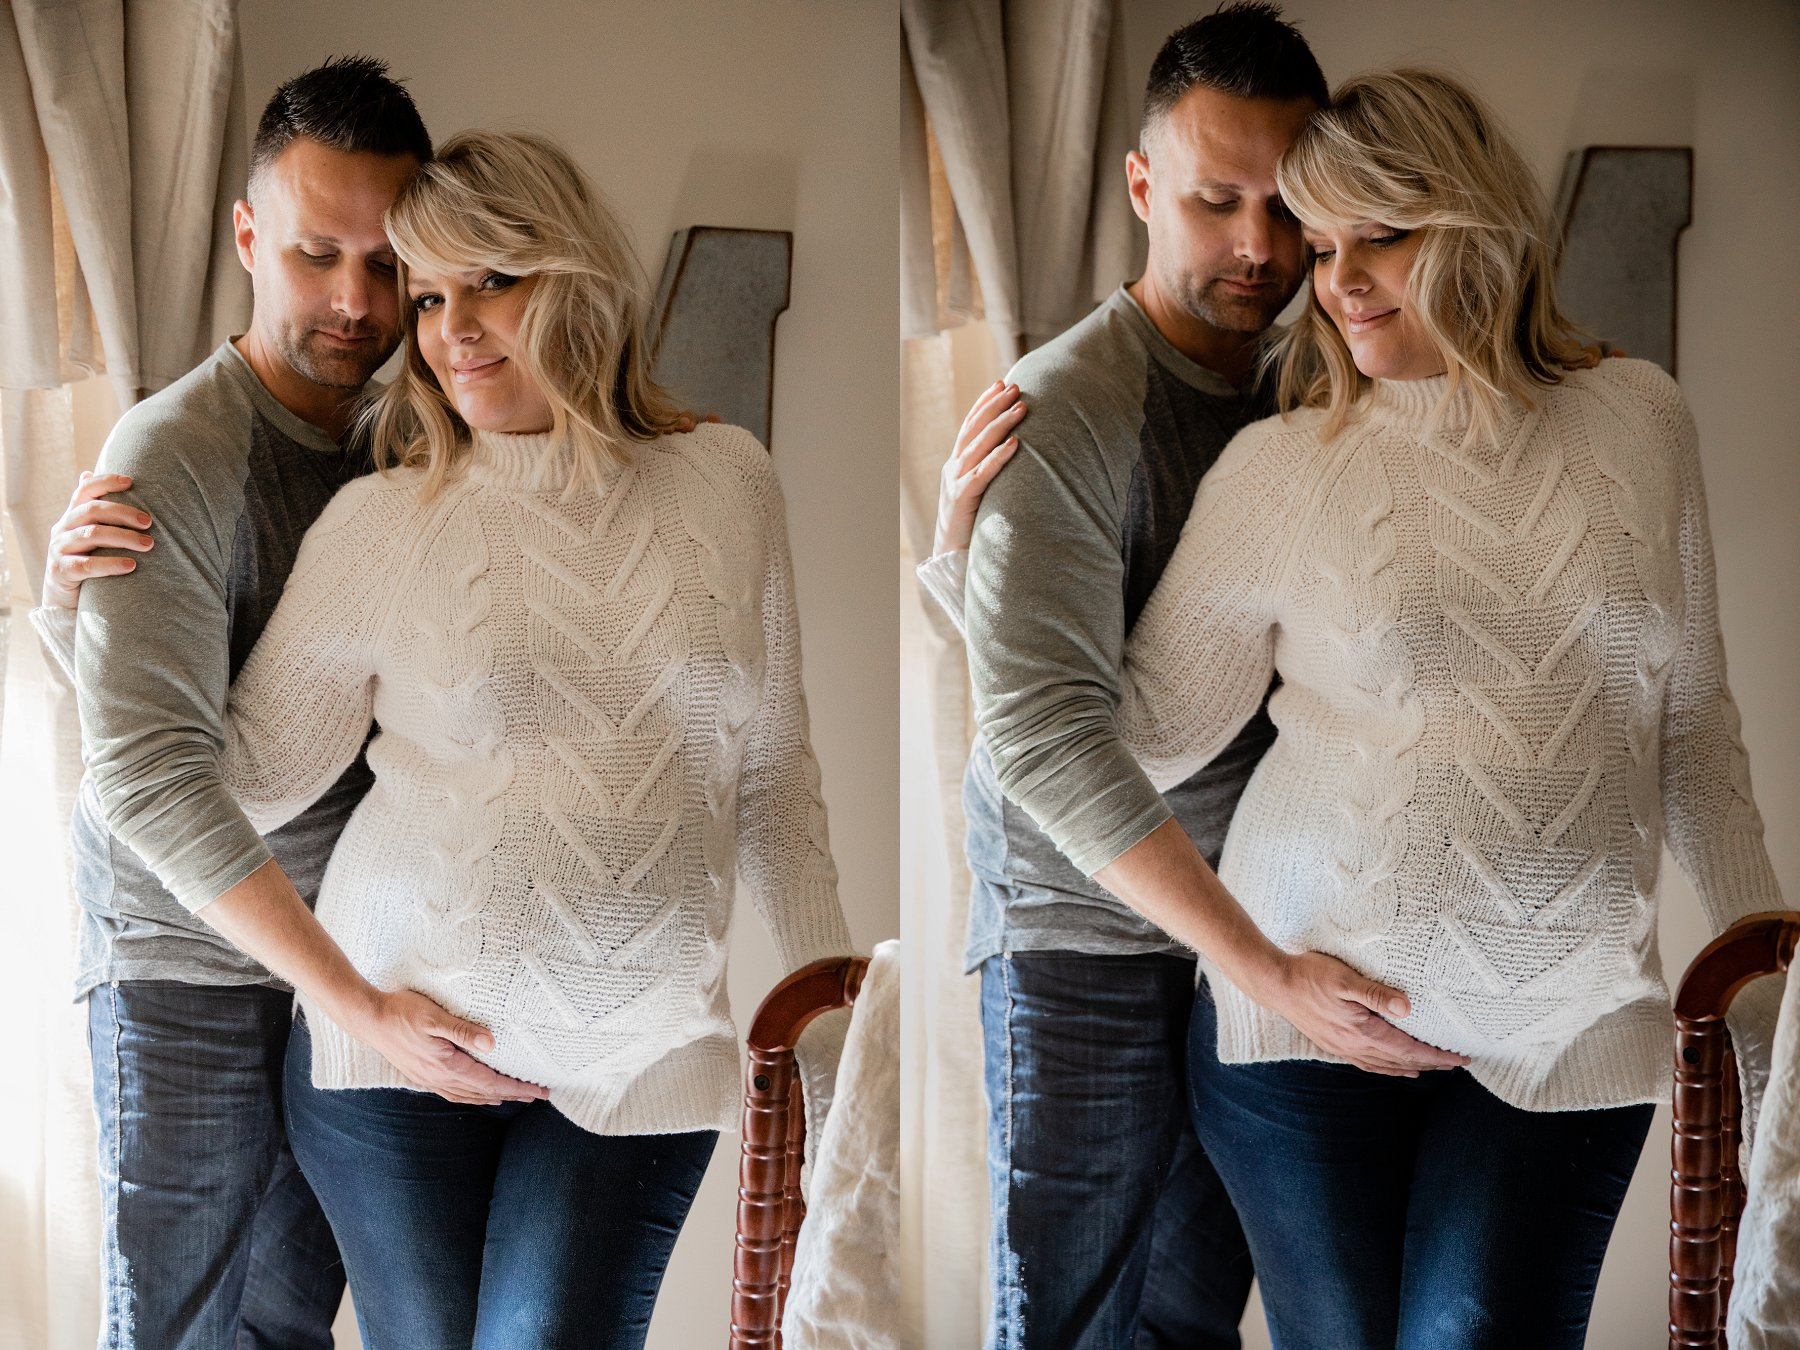 Lifestyle Maternity Photography in Kansas City by Merry Ohler (26)